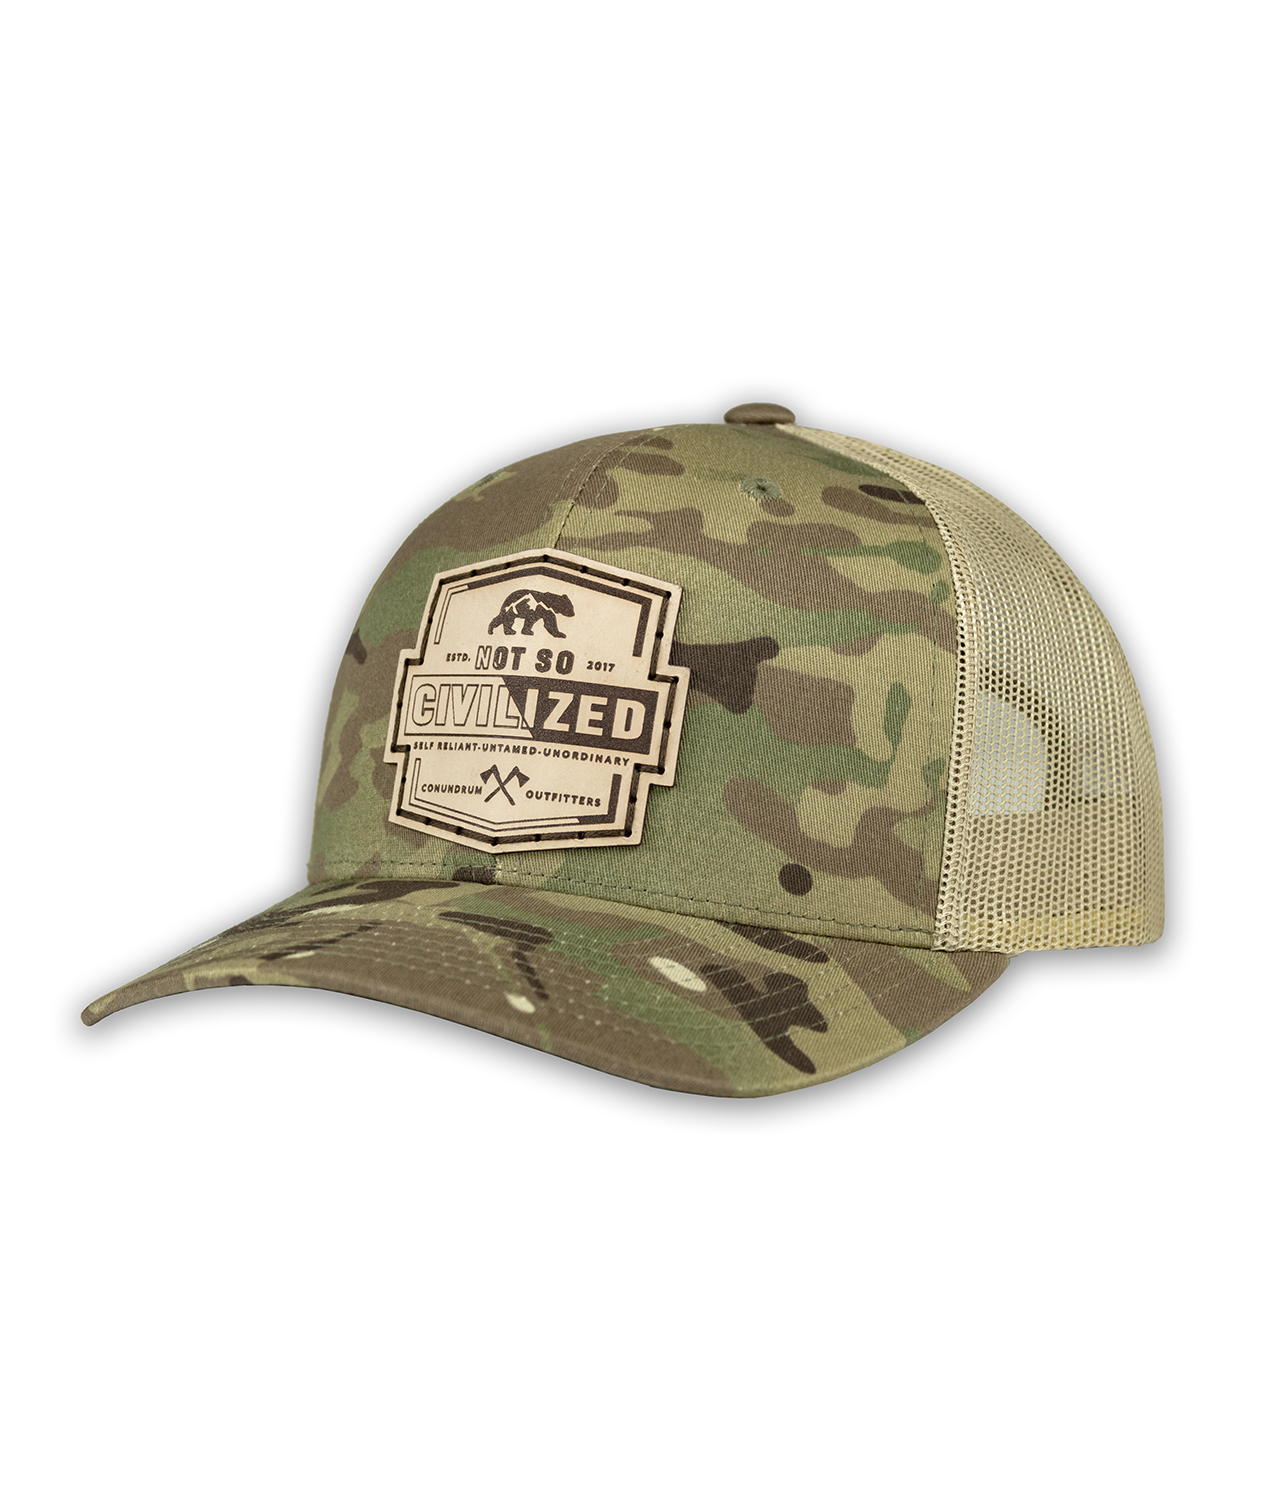 Uncivilized Trucker Hat - Multicam Khaki